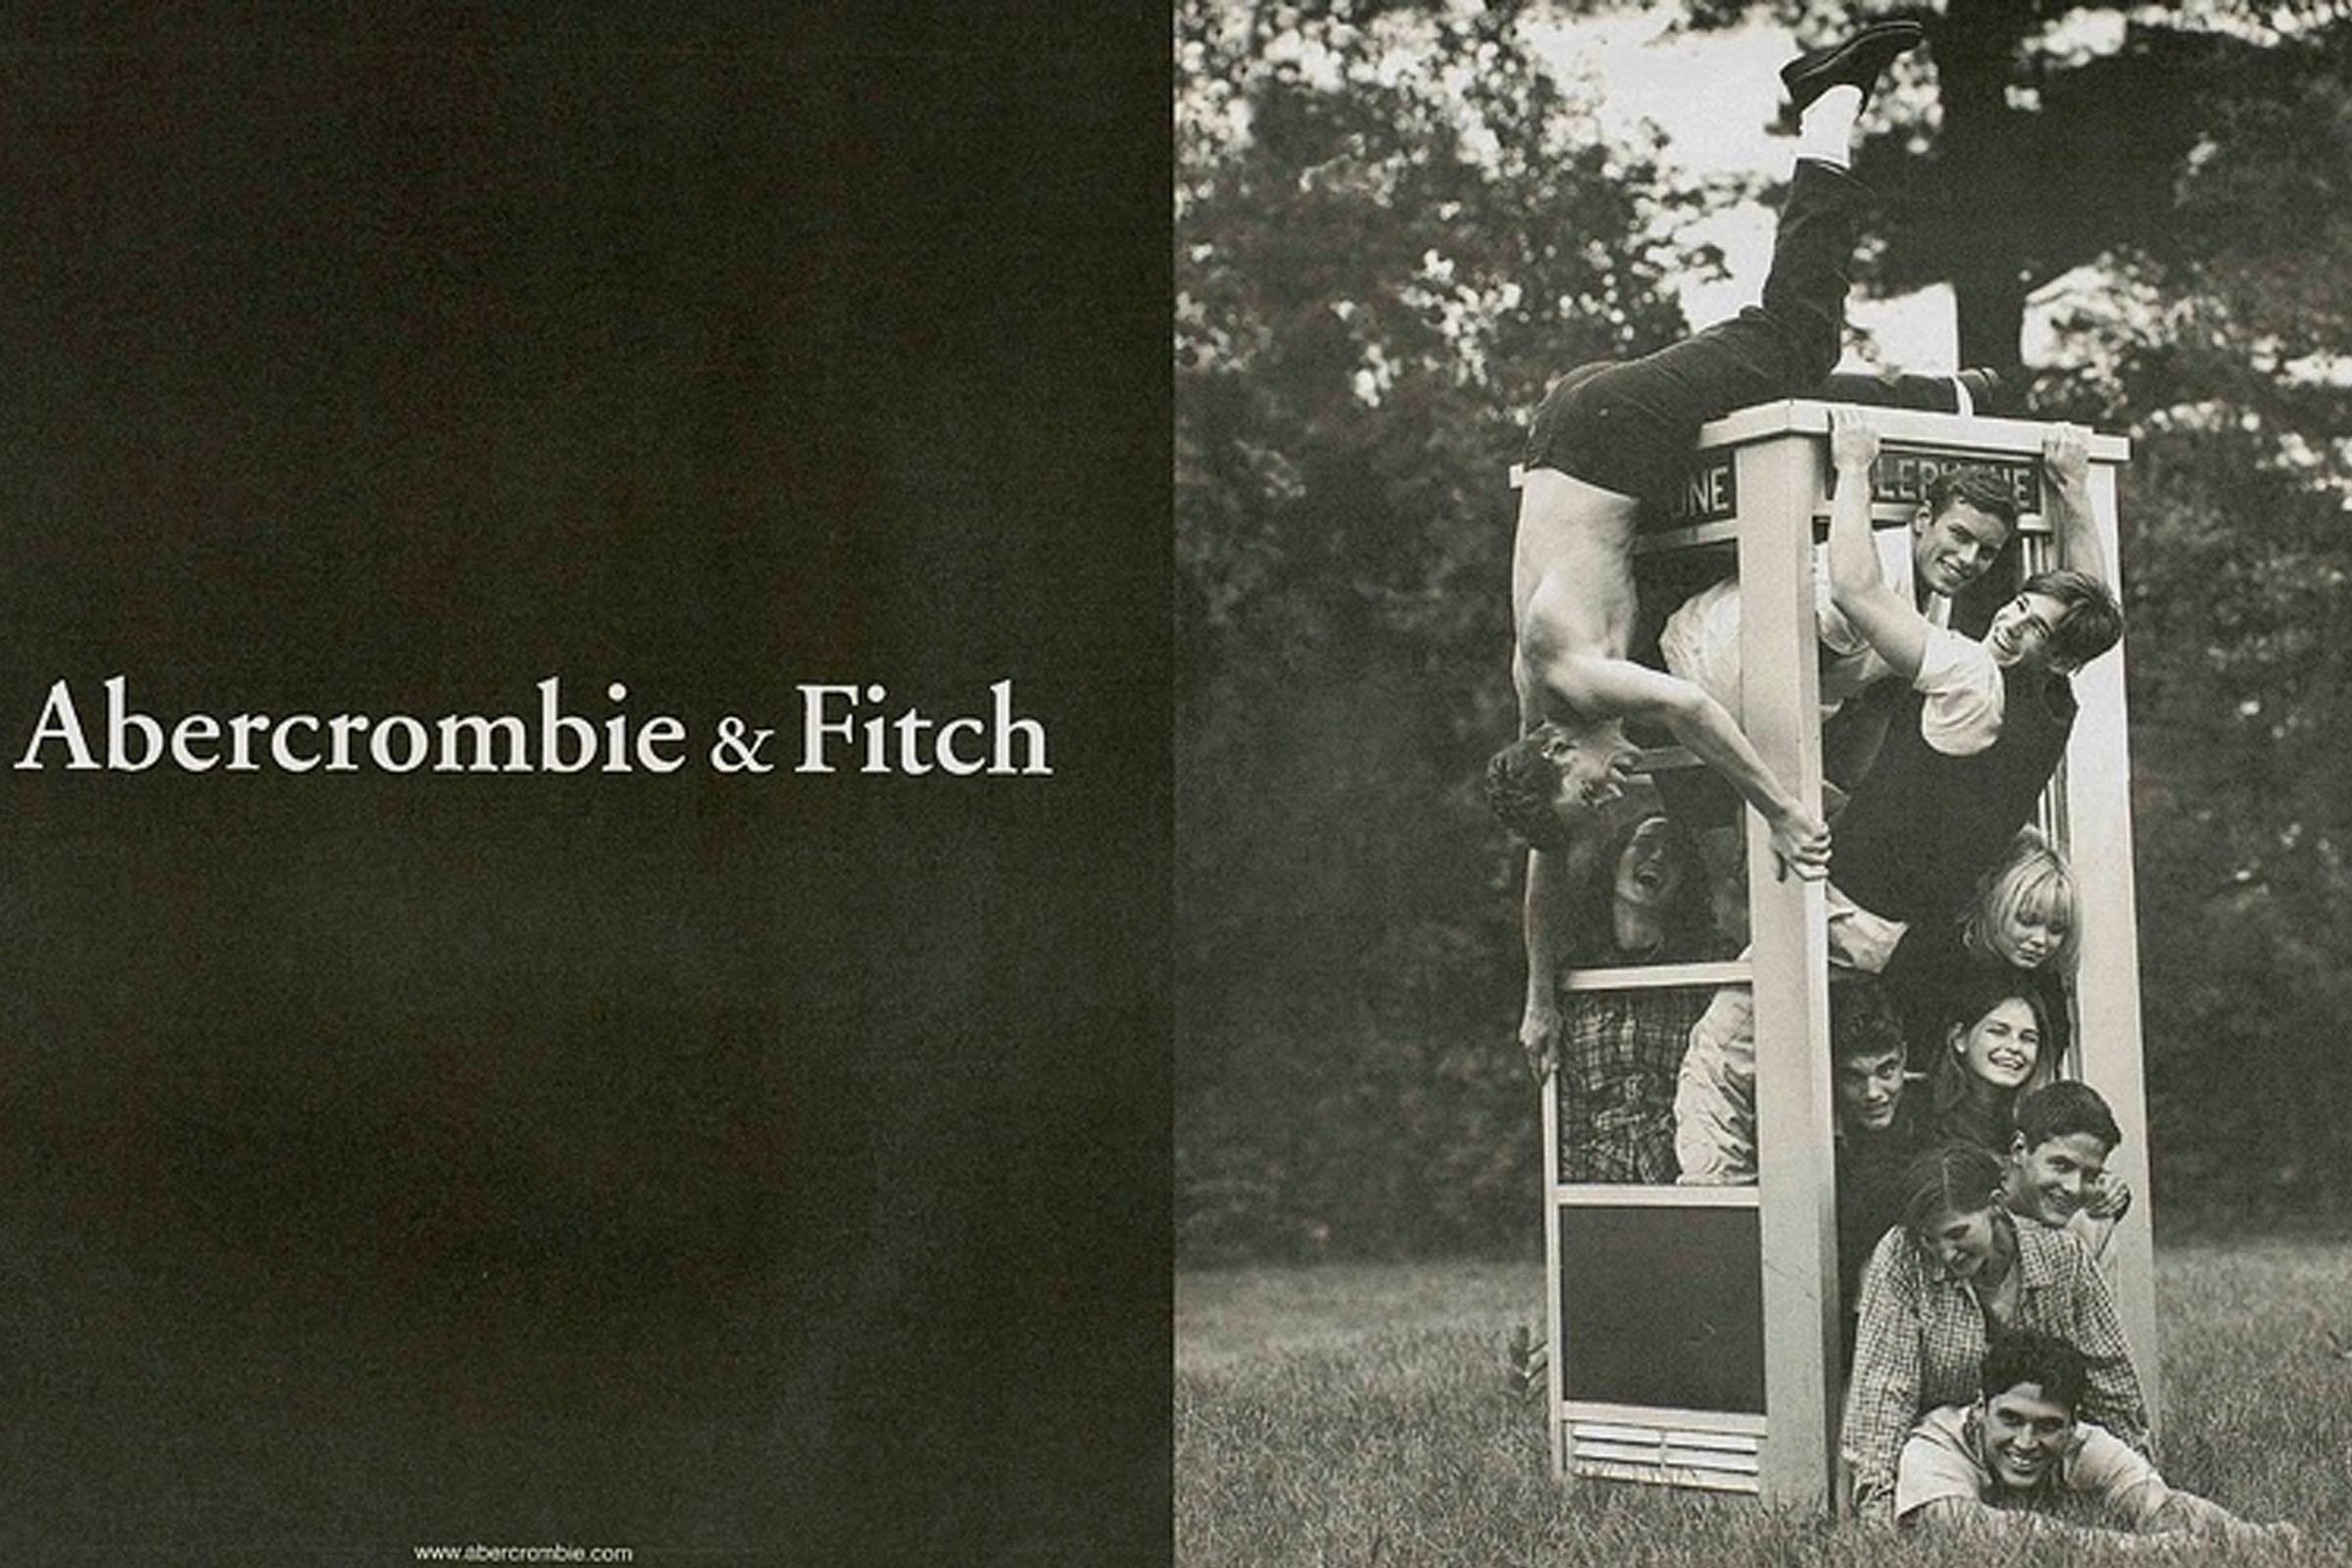 Abercrombie & Fitch: Grappling With Heritage